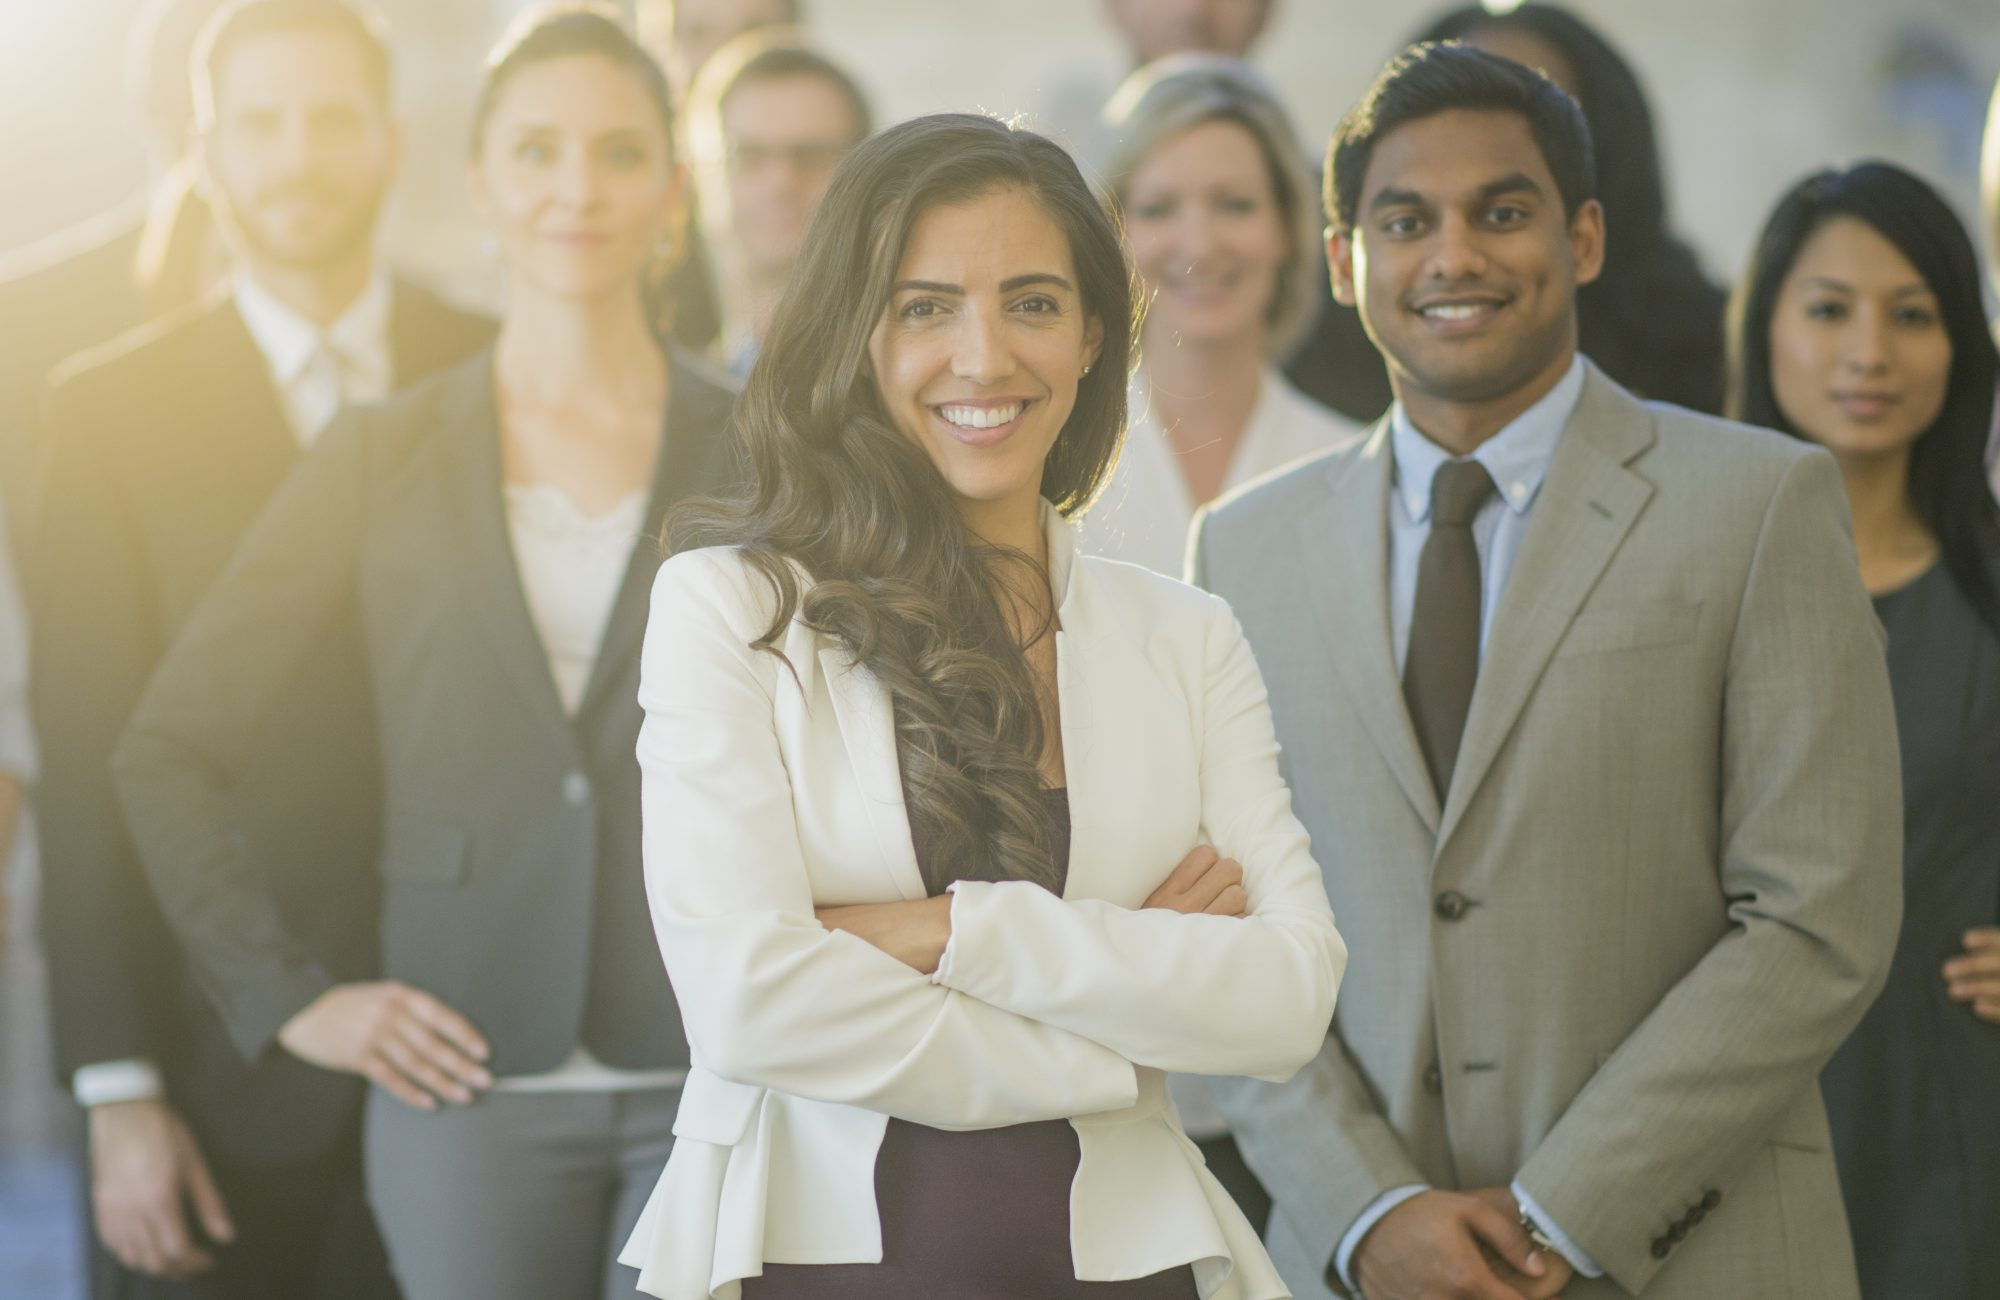 A group of professionals stand together for a portrait session. They are dressed in business wear that represents their occupations. A young woman stands in front.